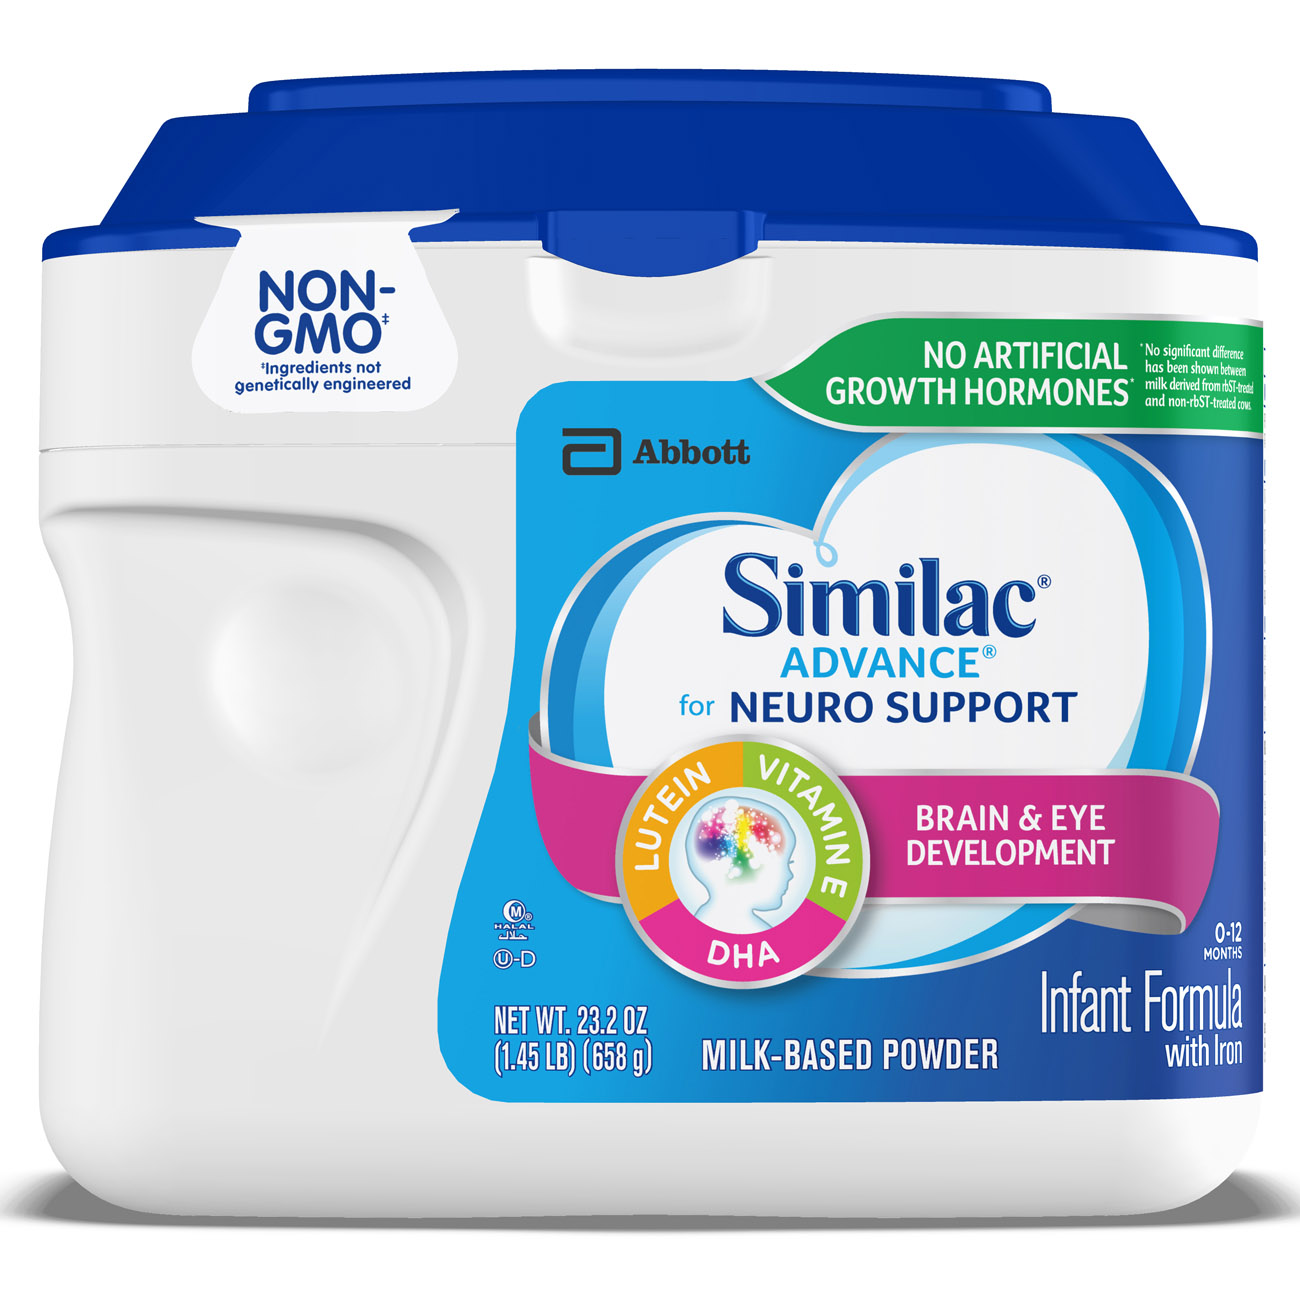 Similac Advance for Neuro Support, Infant Formula with Iron, Baby Formula 1.45 lb